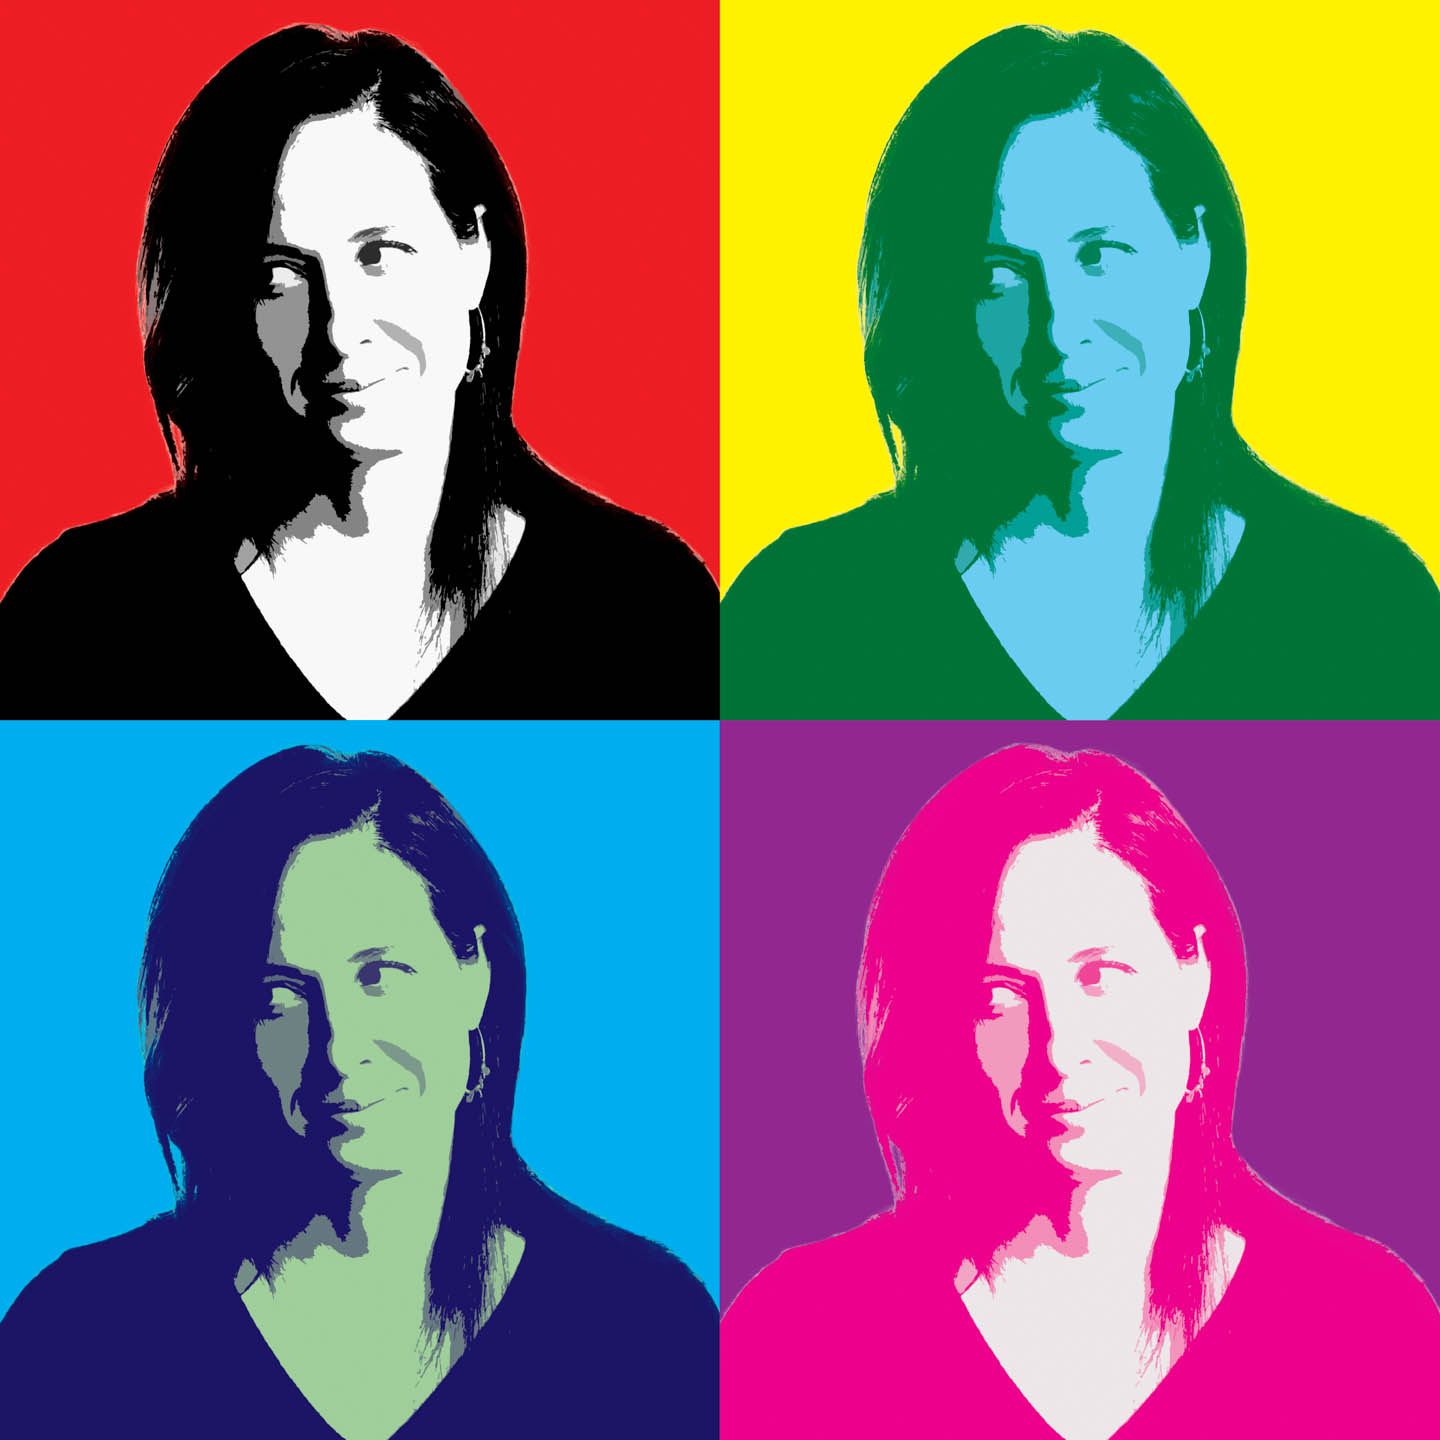 Andy Warhol style portrait